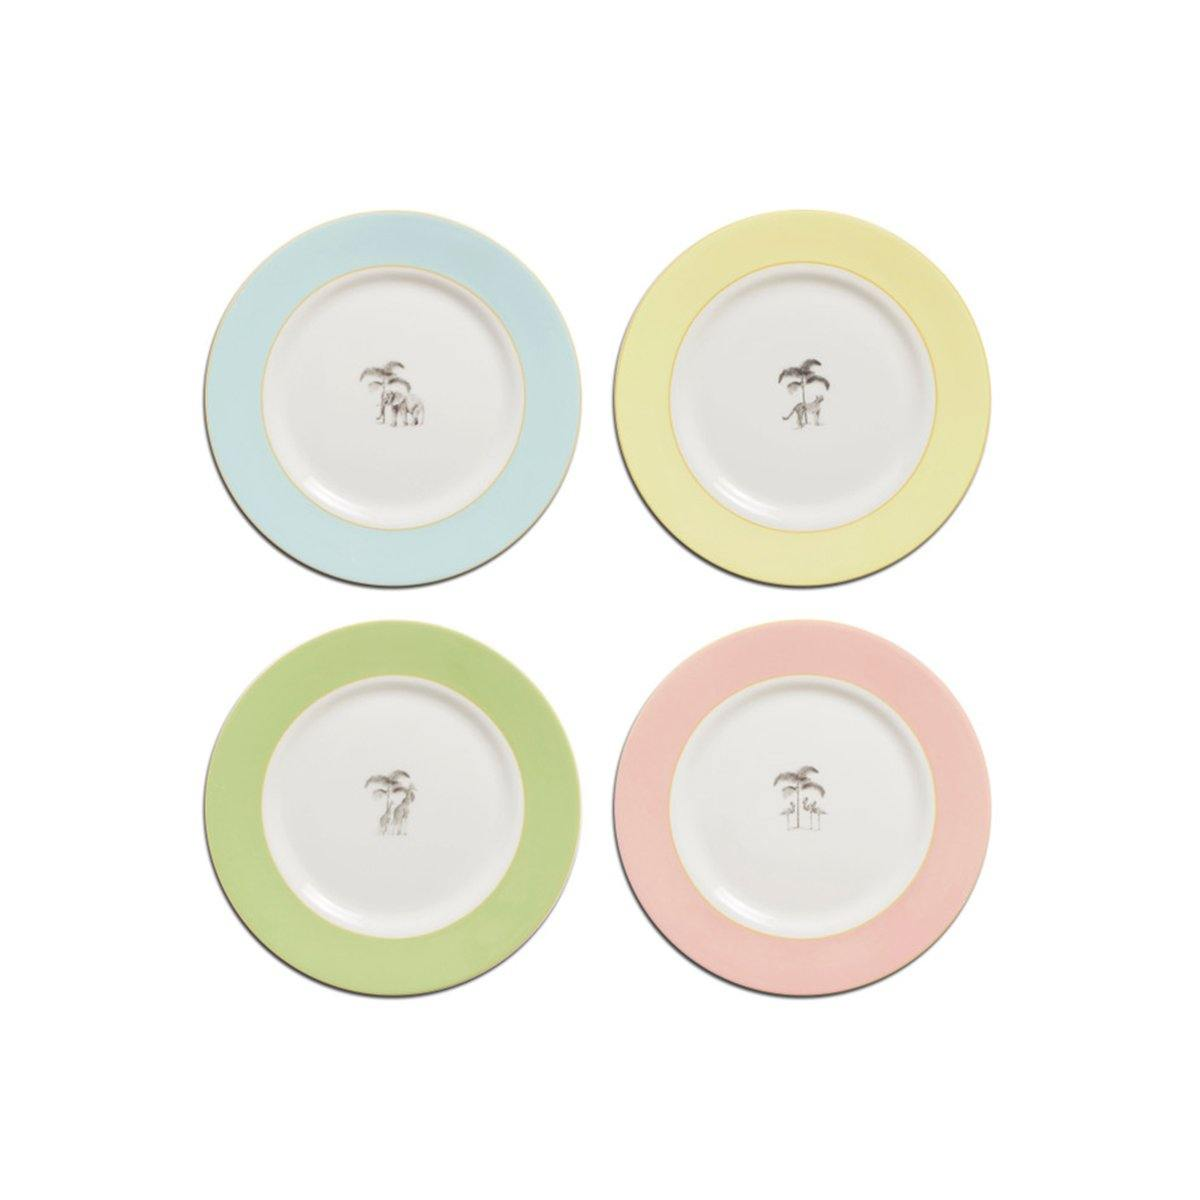 Harlequin Bone China Starter / Dessert Plates - Set of 4 - club matters